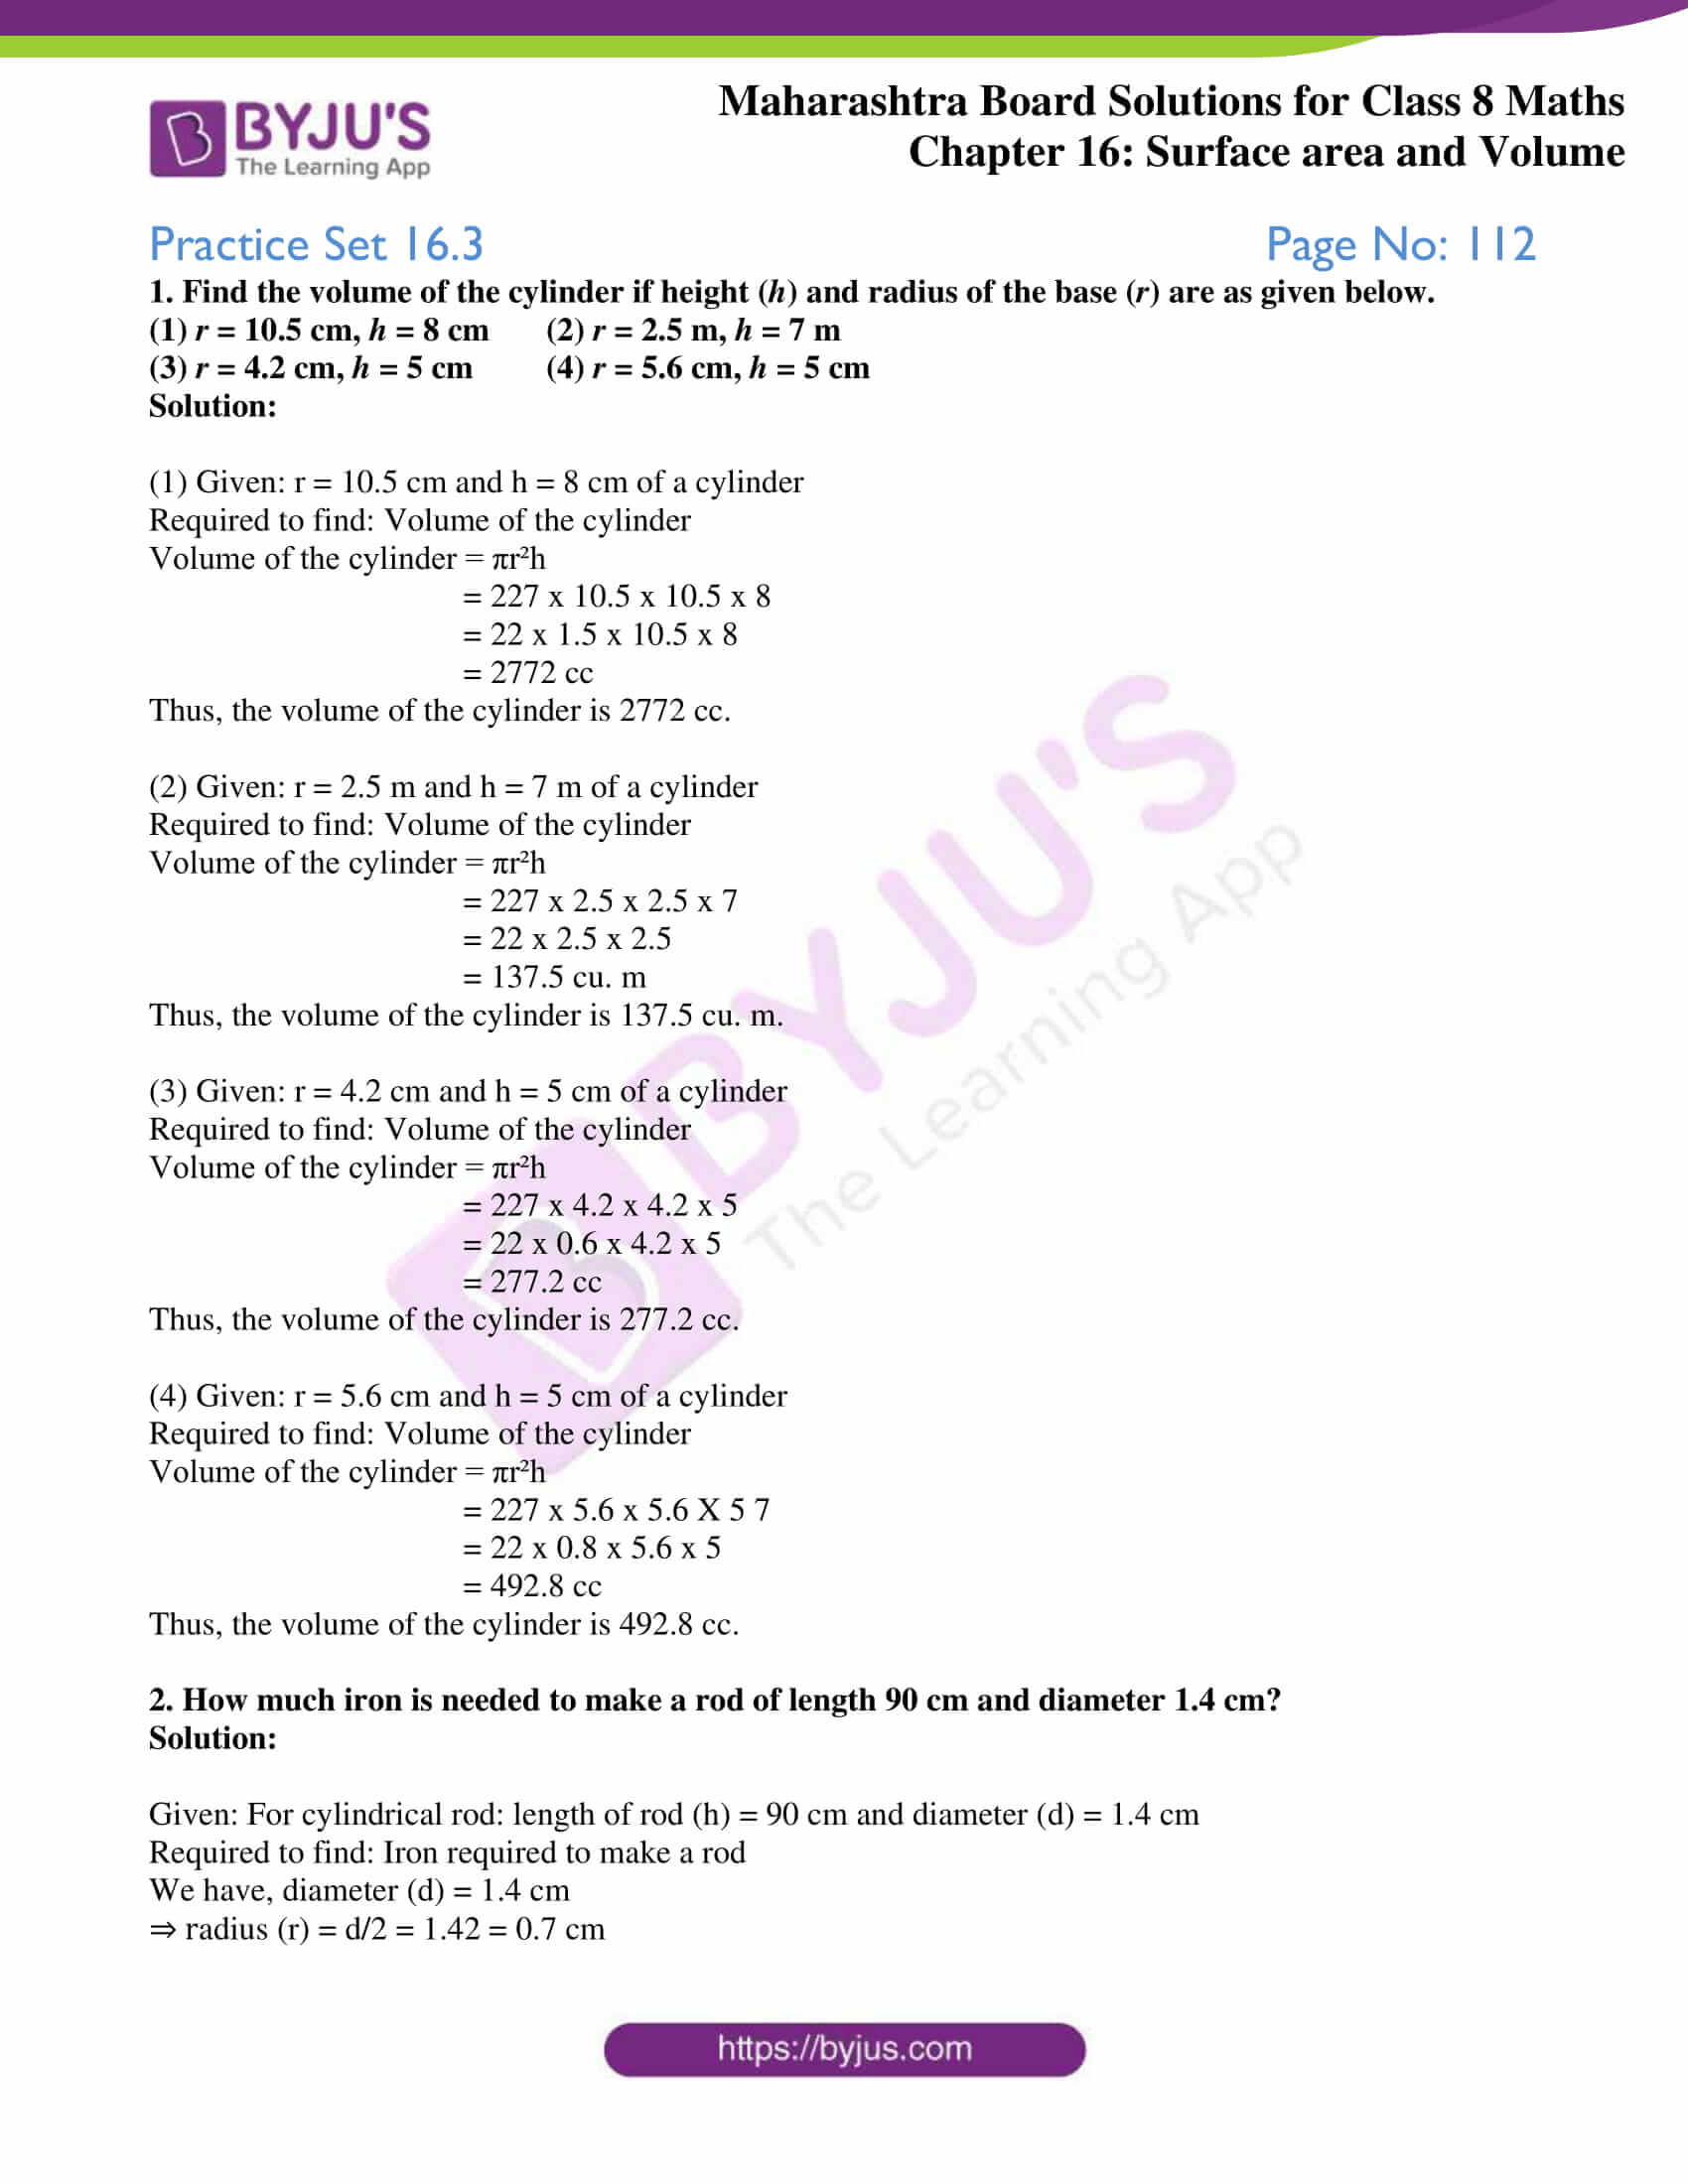 msbshse sol for class 8 maths chapter 16 7